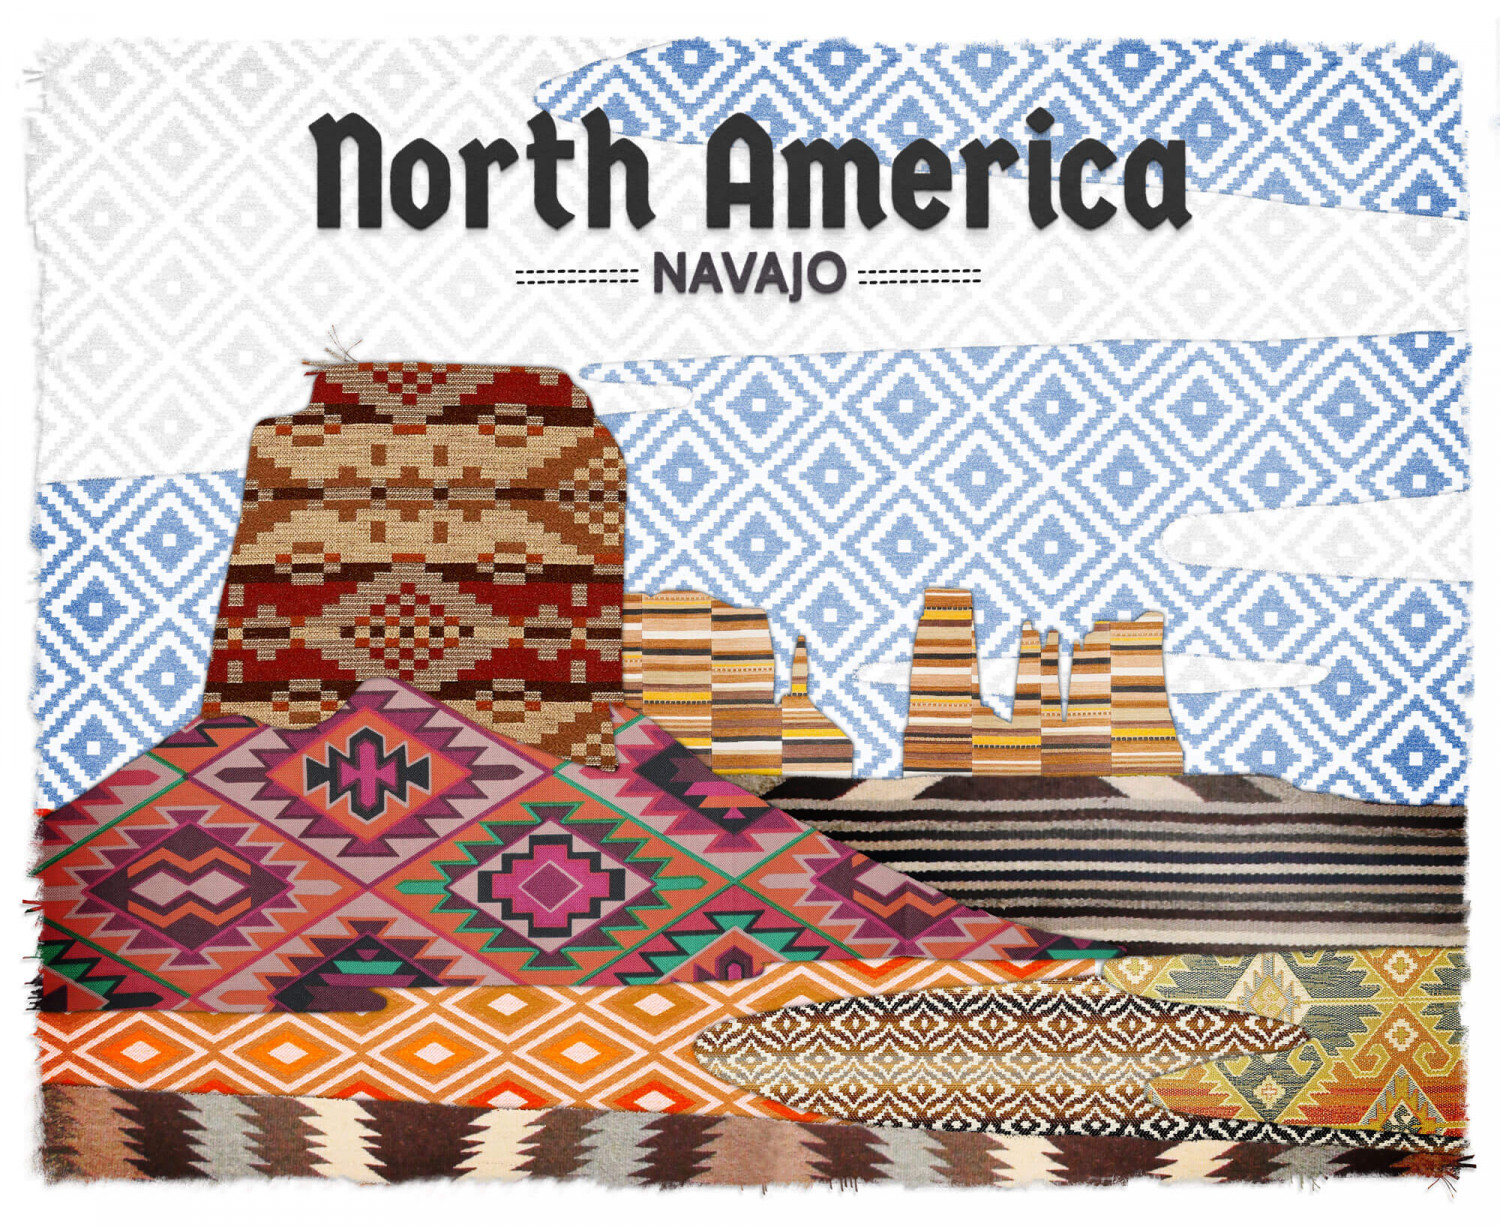 Material World: Navajo Infographic